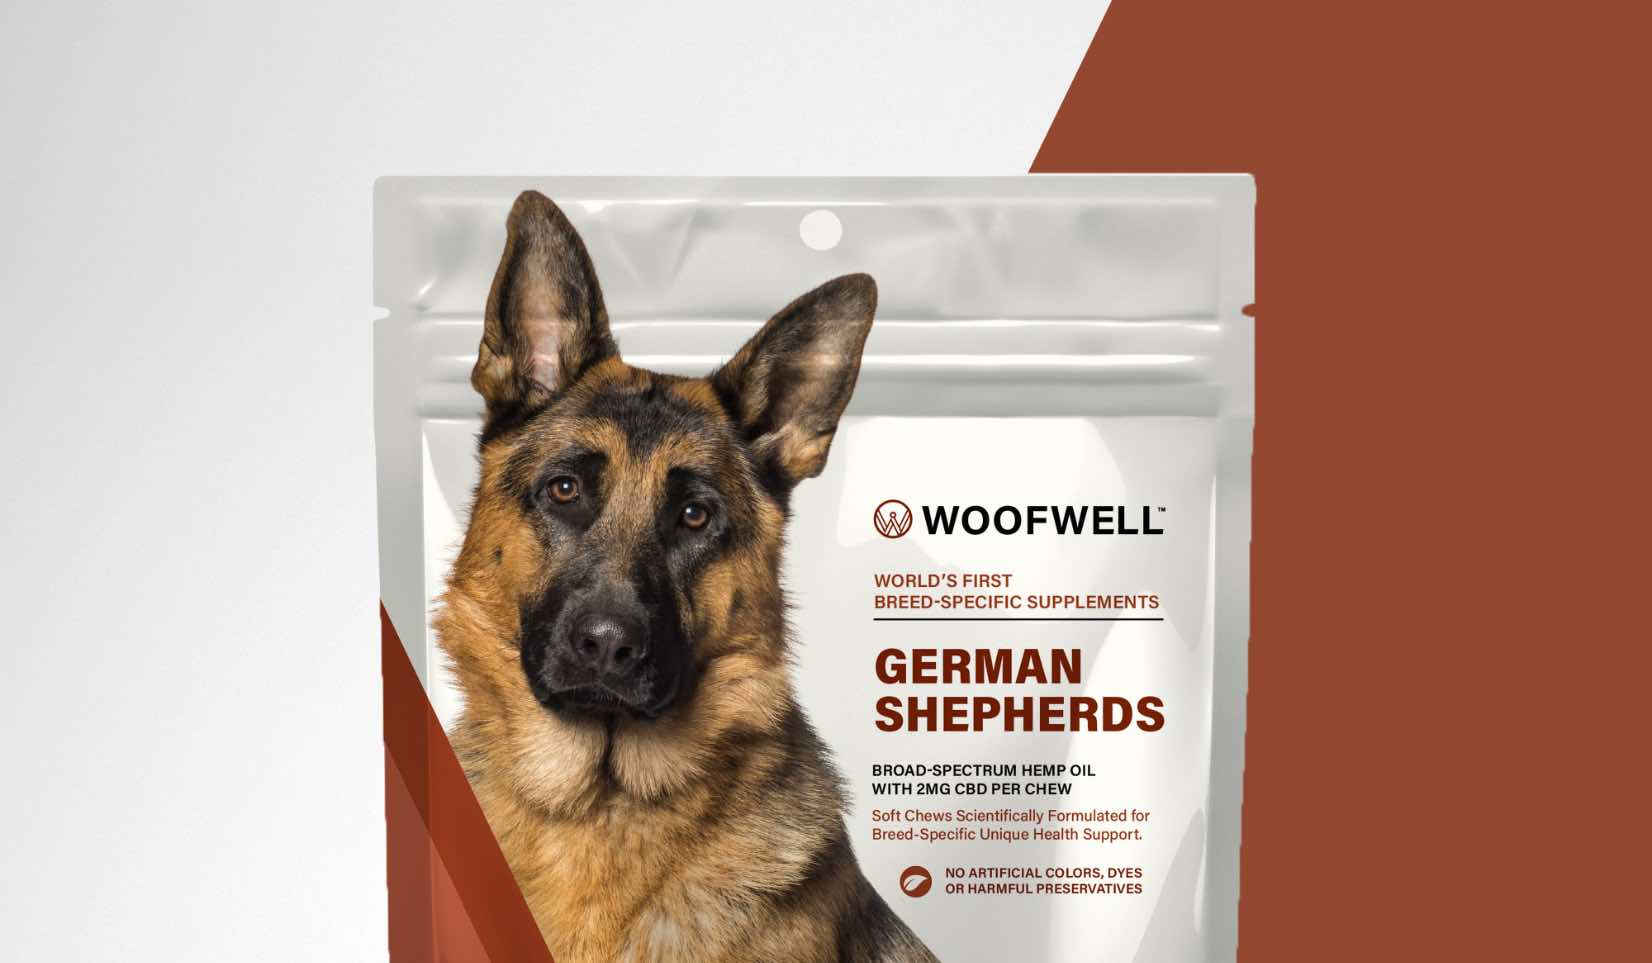 woofwell packaging